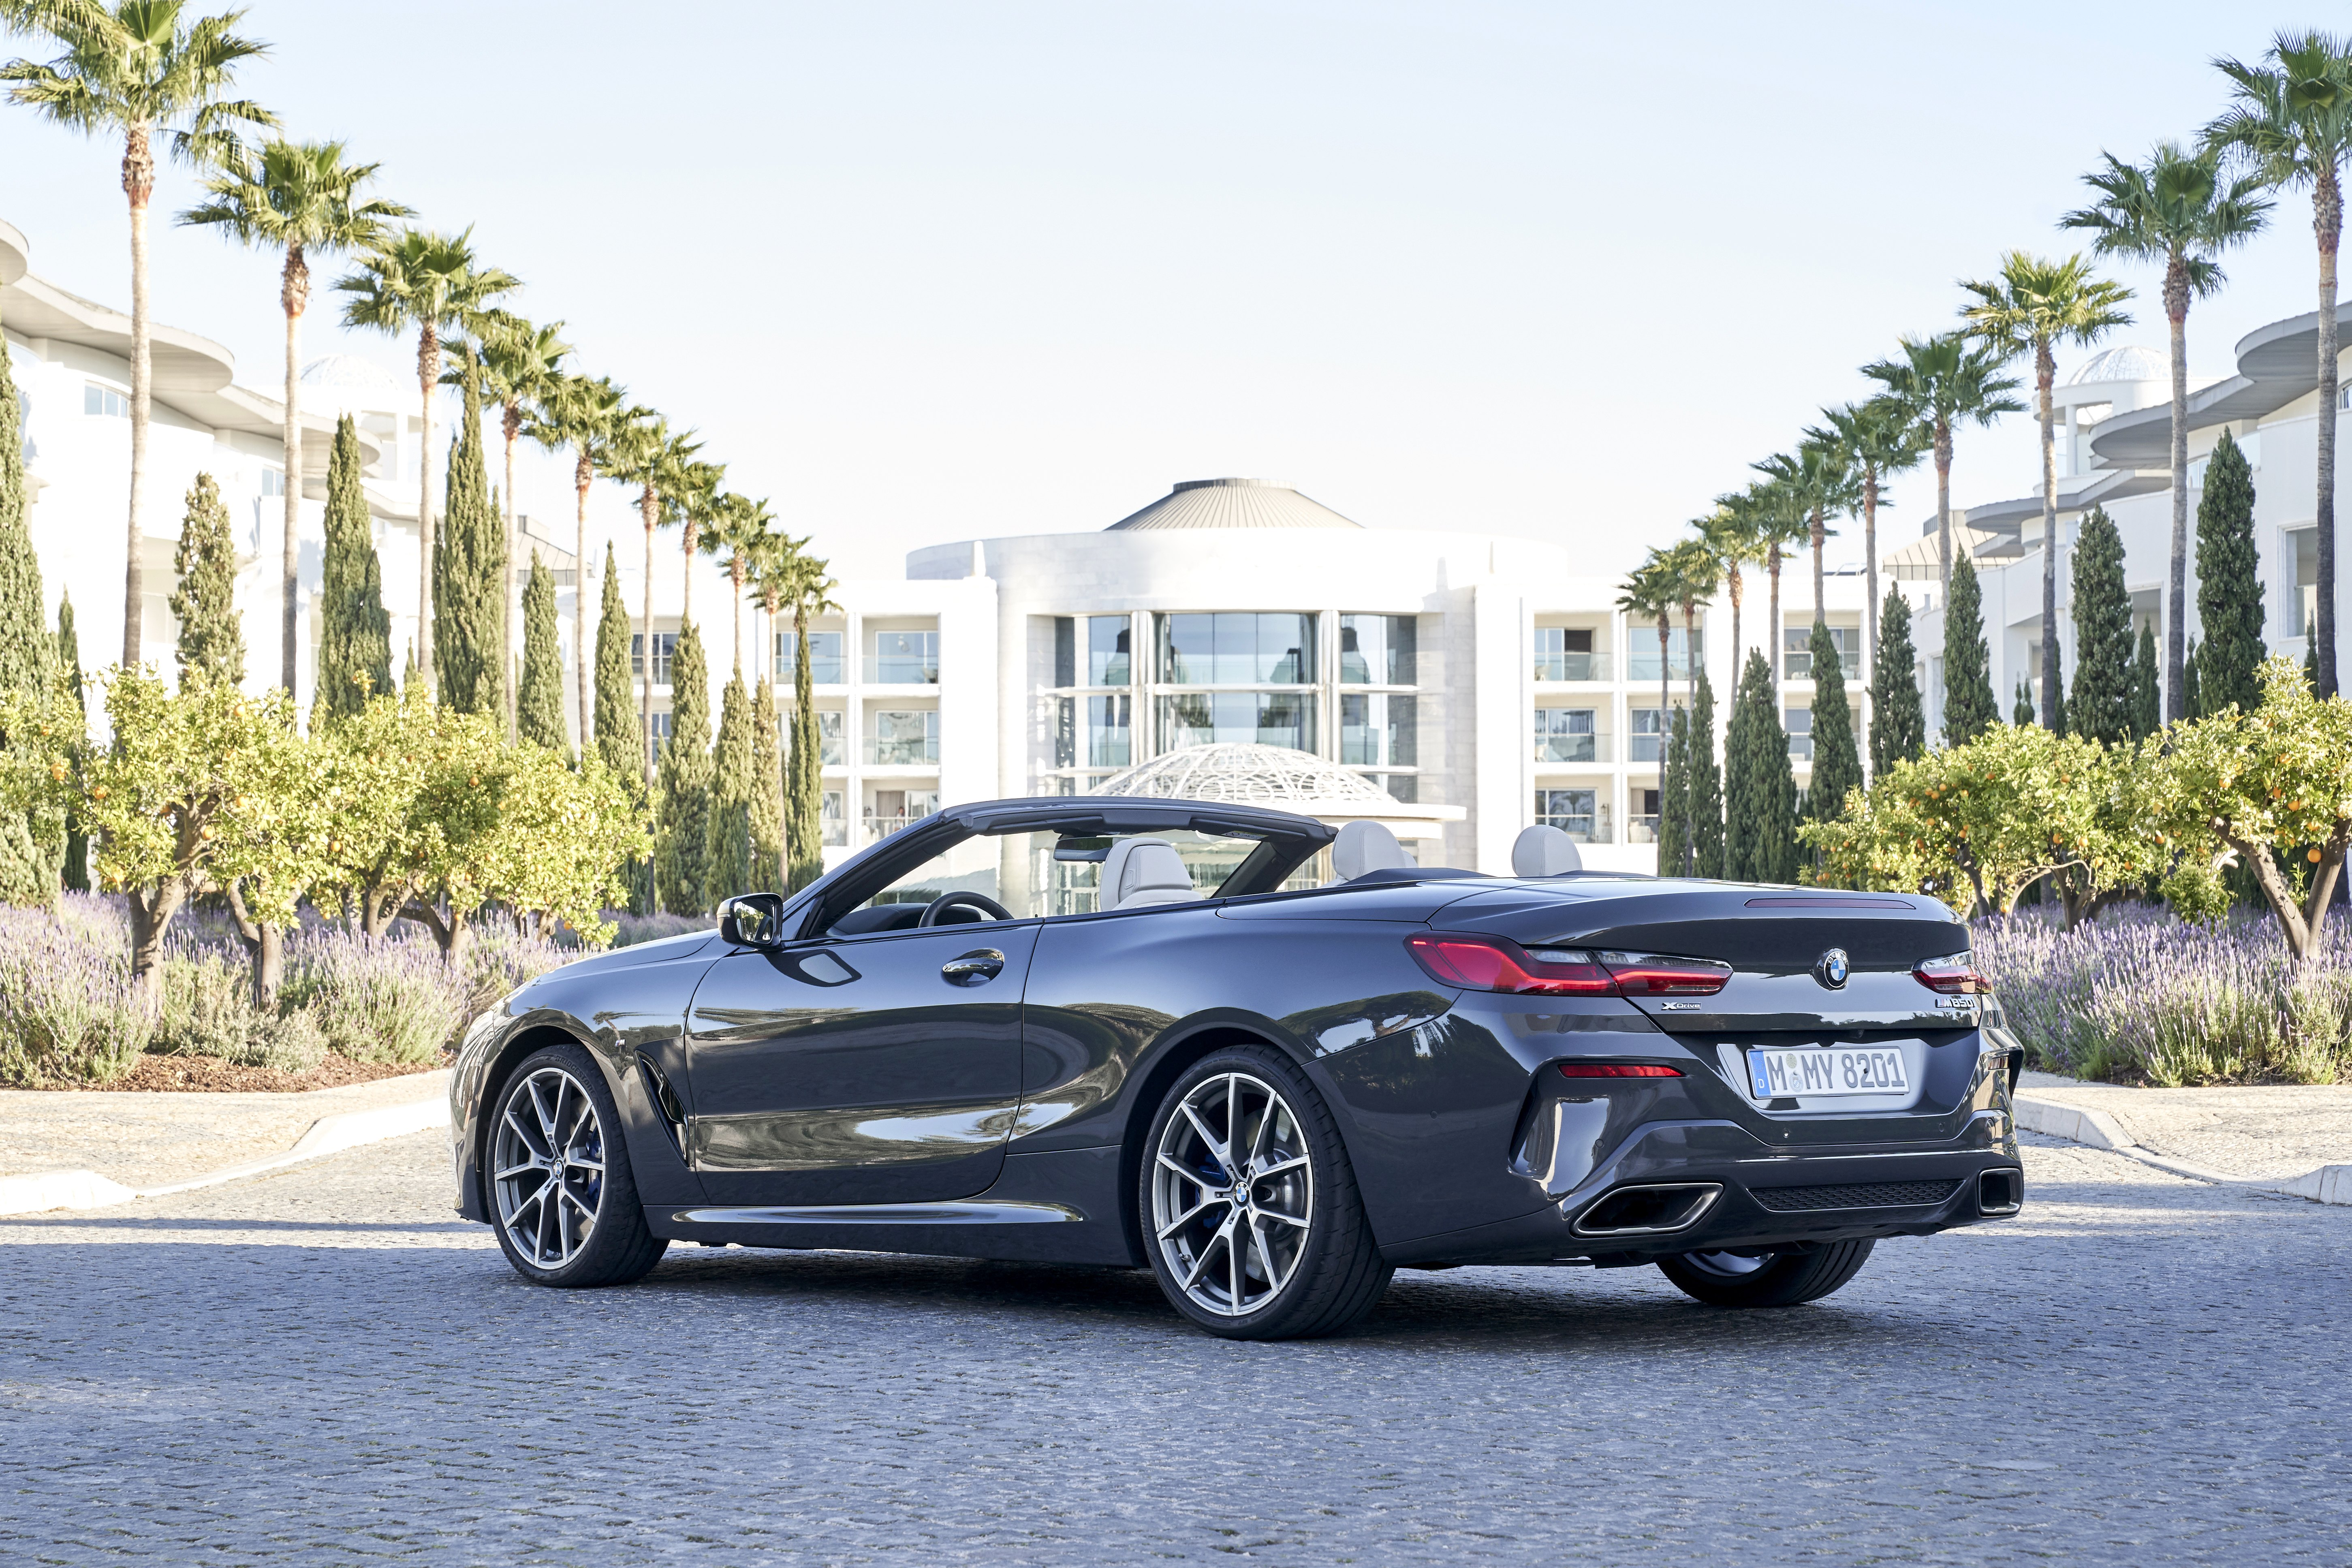 Demo BMW M850i xDrive Cabriolet for $531+HST / month.